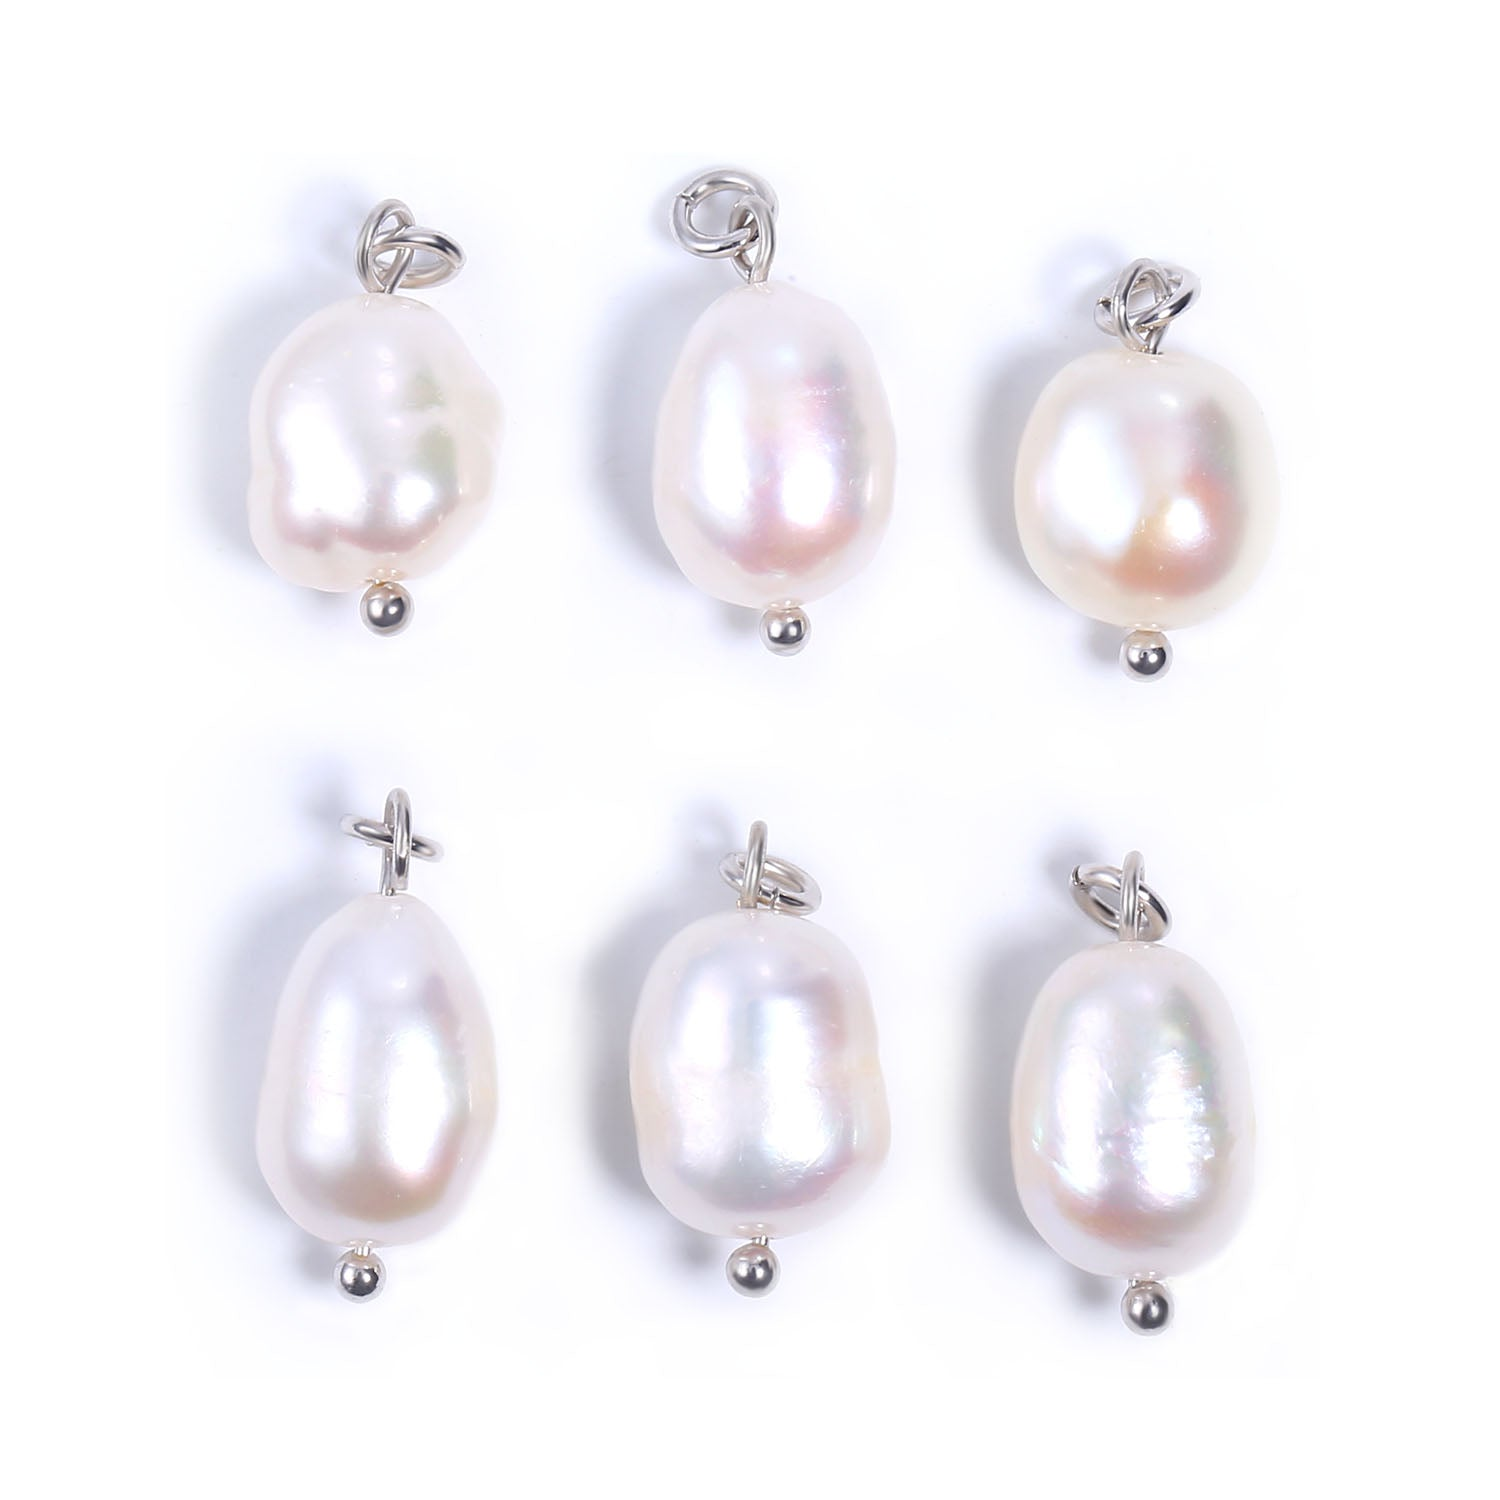 6 PCS Silver Color Freshwater Baroque Pearl Charms Pendant